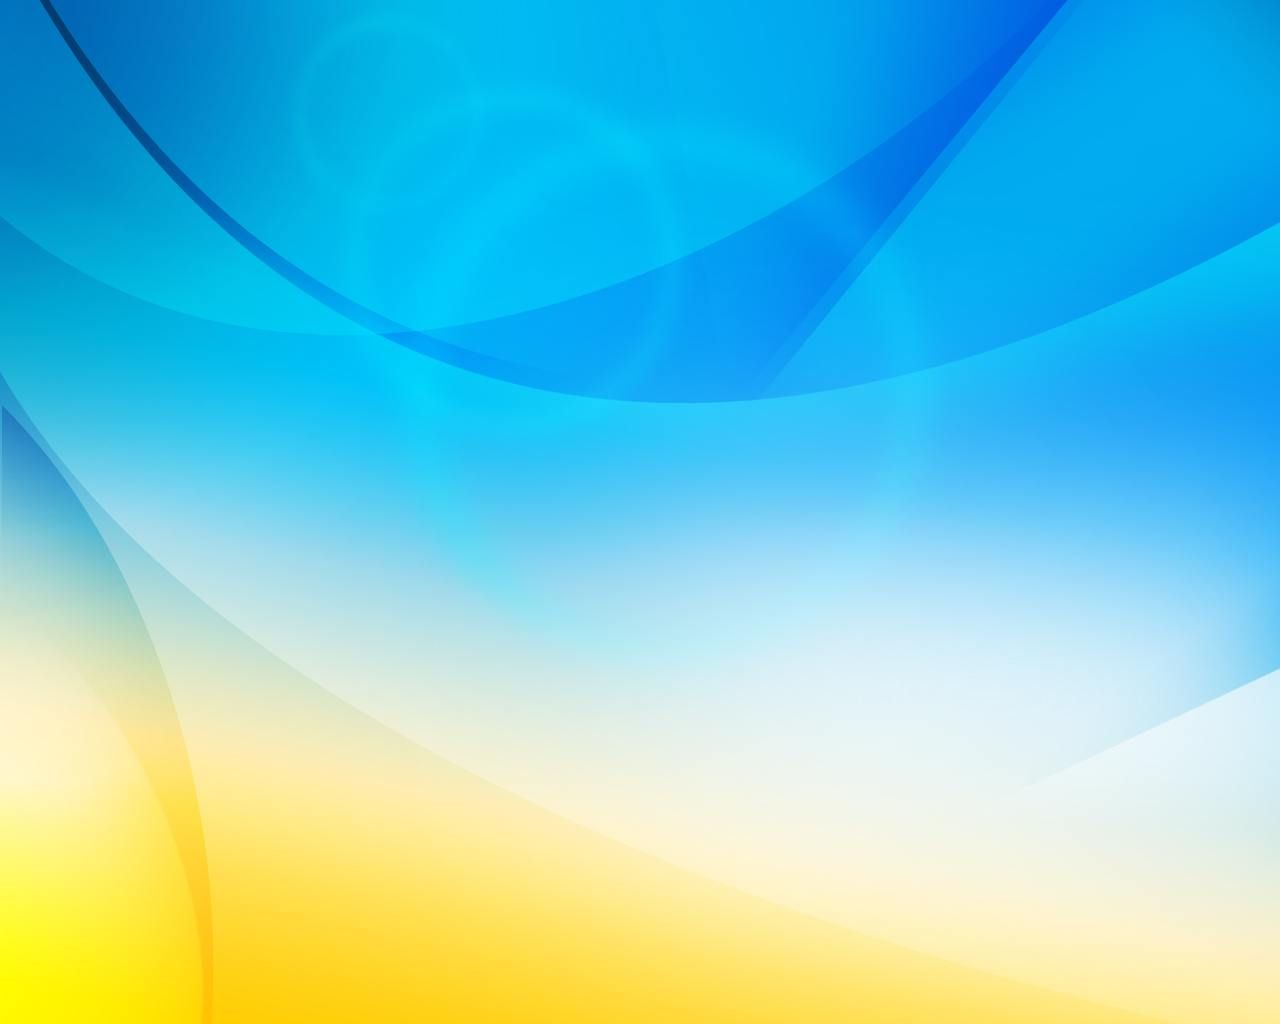 Download Green And Yellow Blue Stripes Wallpaper 1280x1024 Hd Yellow Background White Wallpaper Background